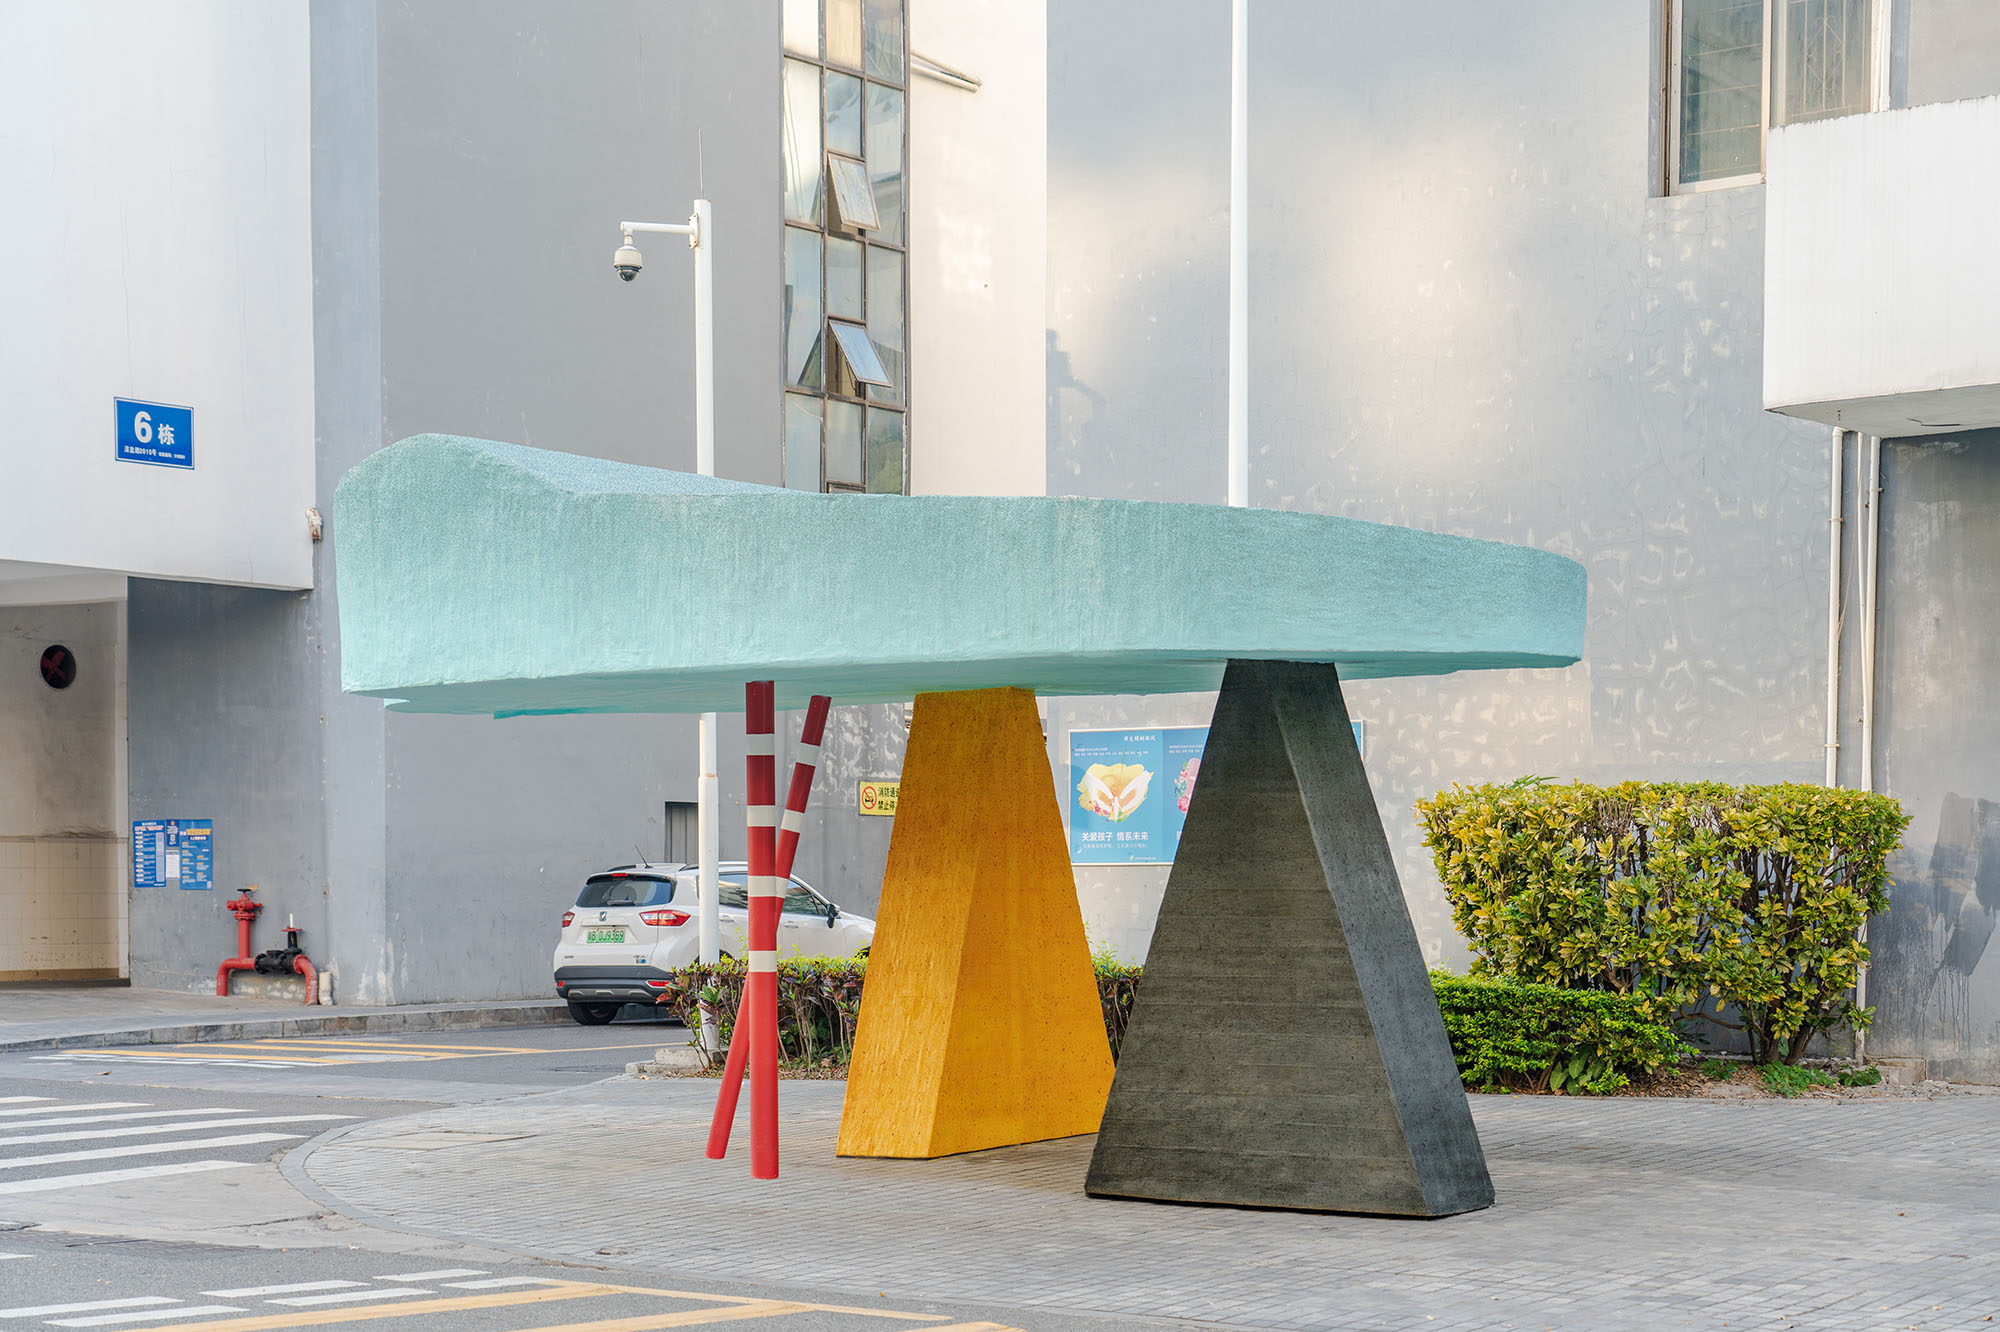 Object on a street corner, a triangular shelter designed by Sam Jacob Studio